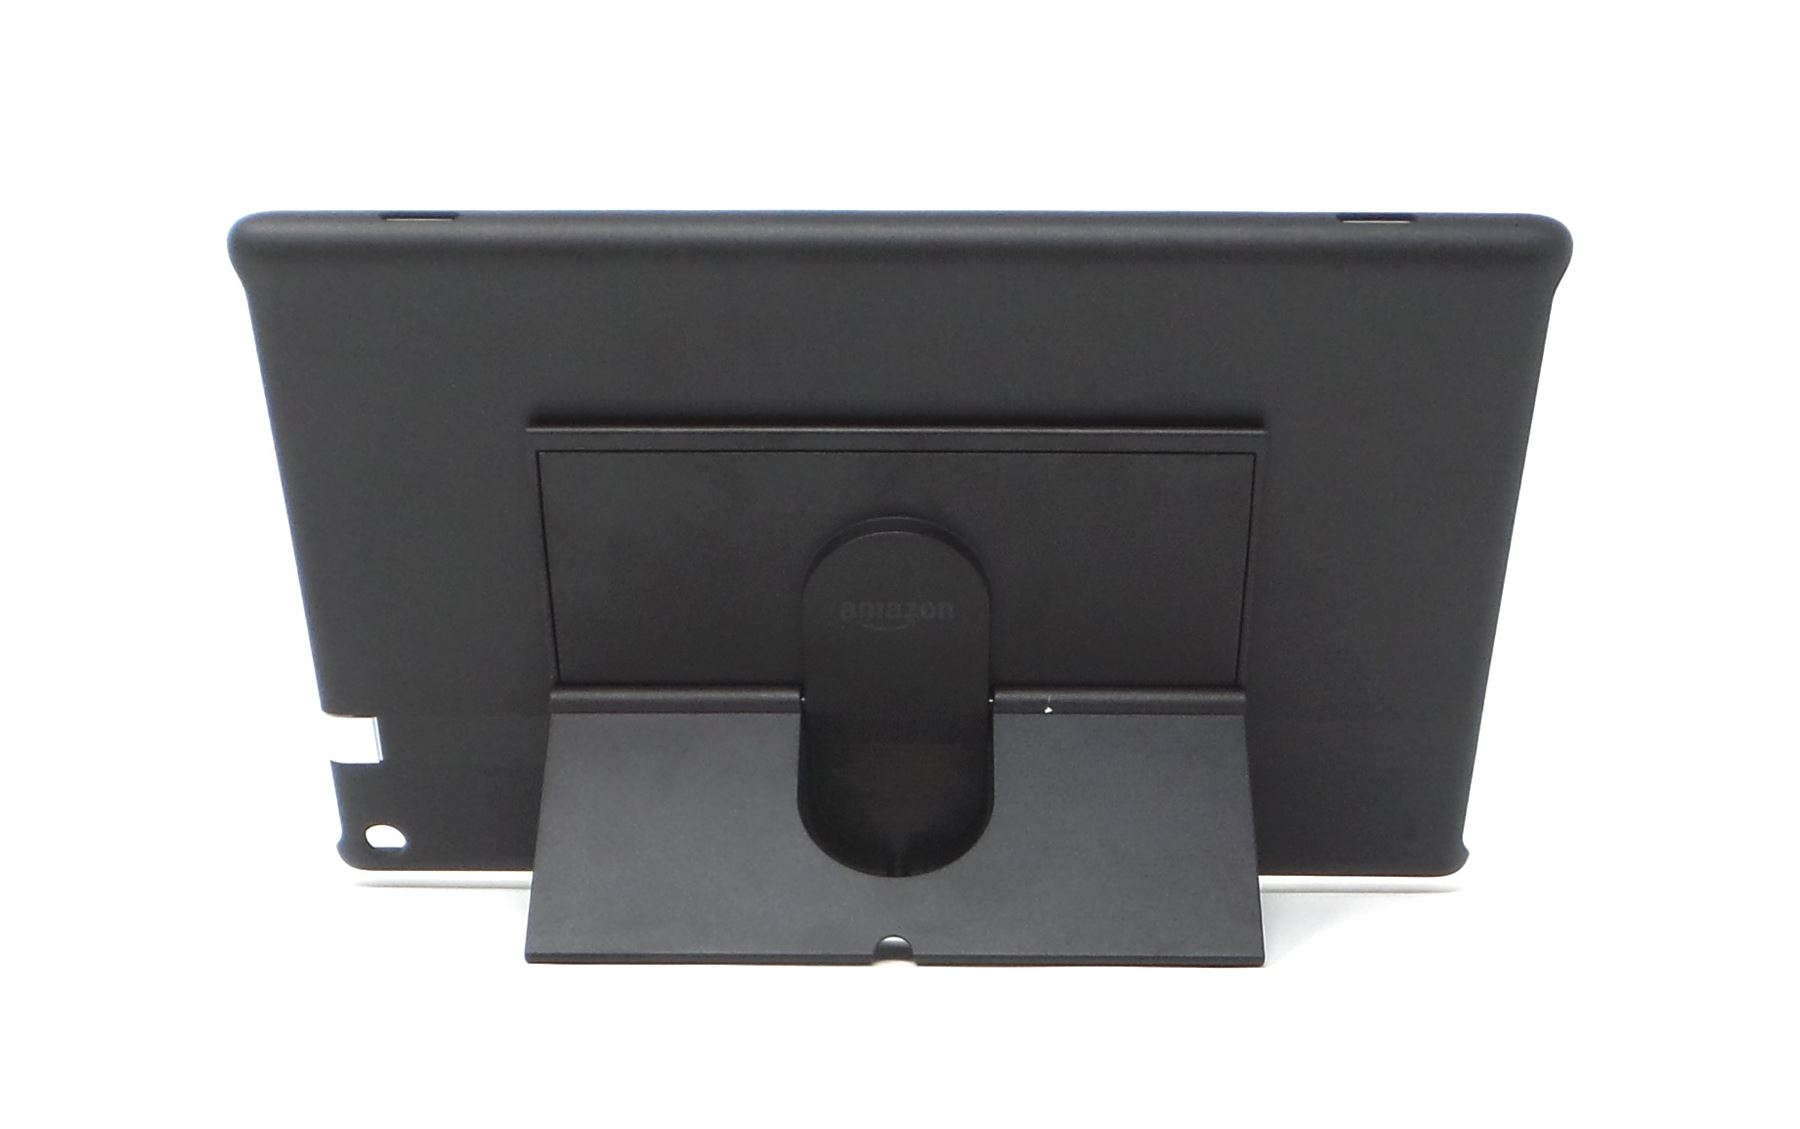 Amazon Show Mode Charging Dock for Amazon Fire HD 10 Tablet 7th Gen Black